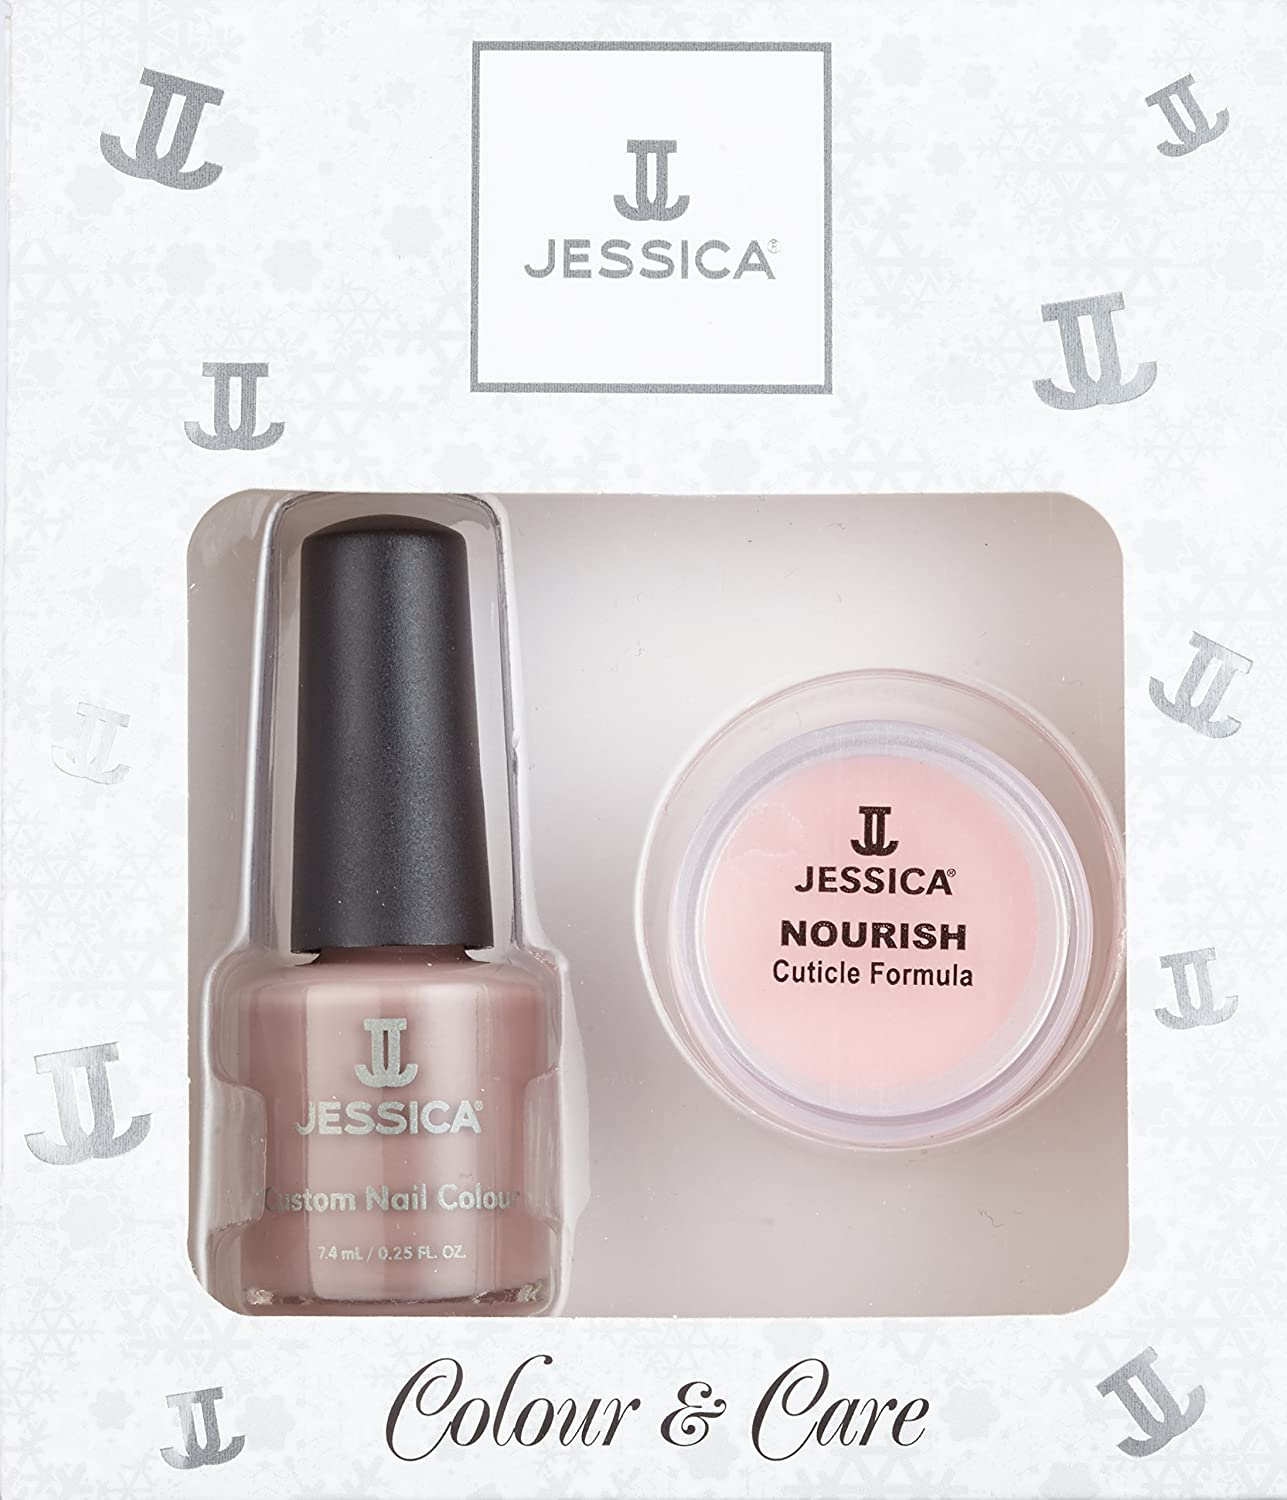 JESSICA Colour and Care Gift Set, Intrigue: Amazon.co.uk: Luxury Beauty